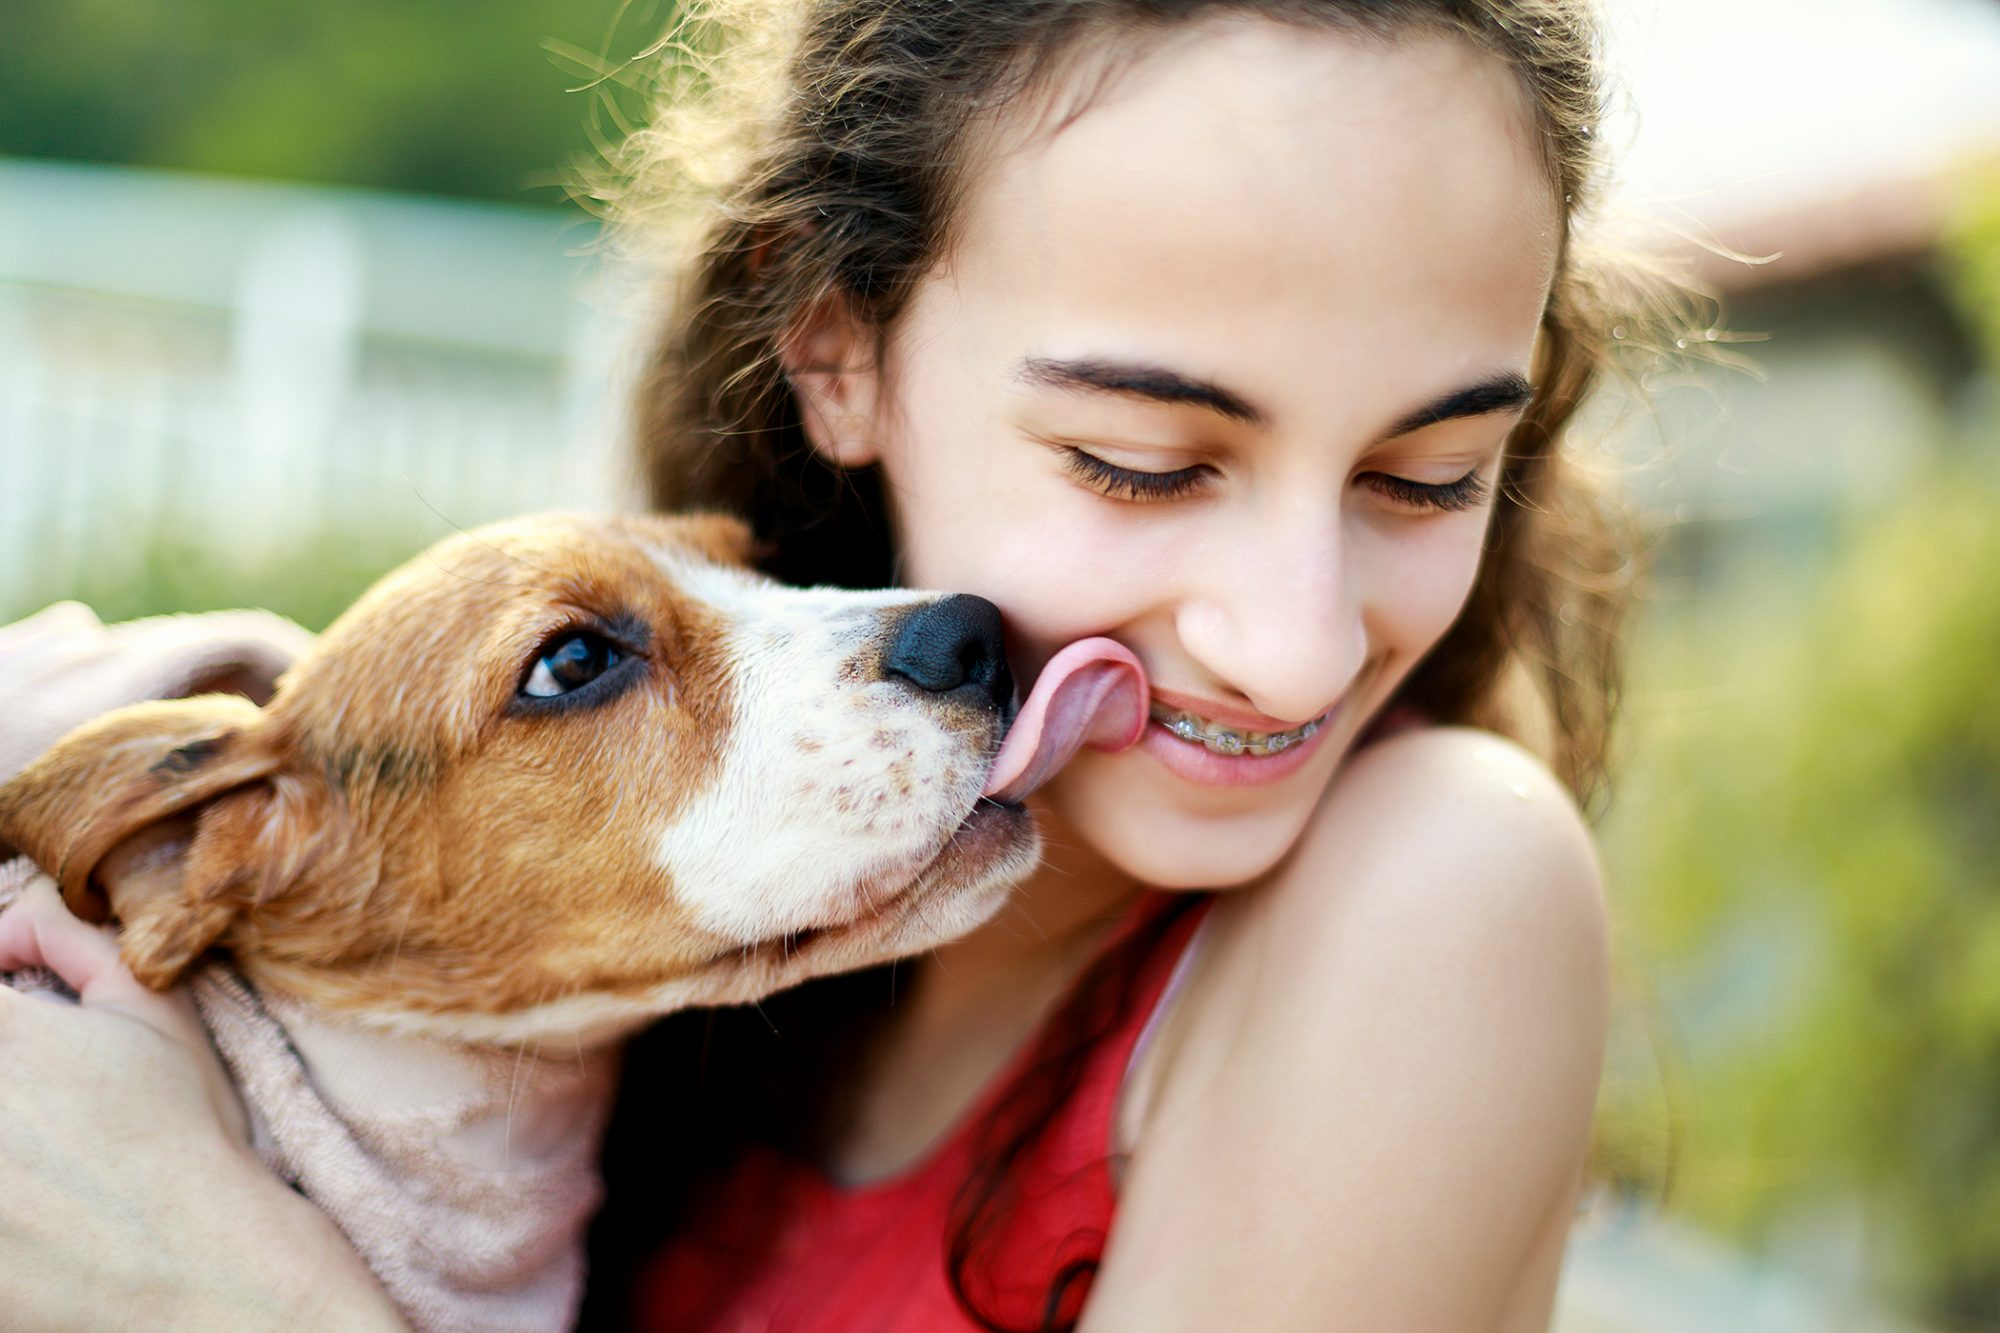 beagle kissing teen-aged girl